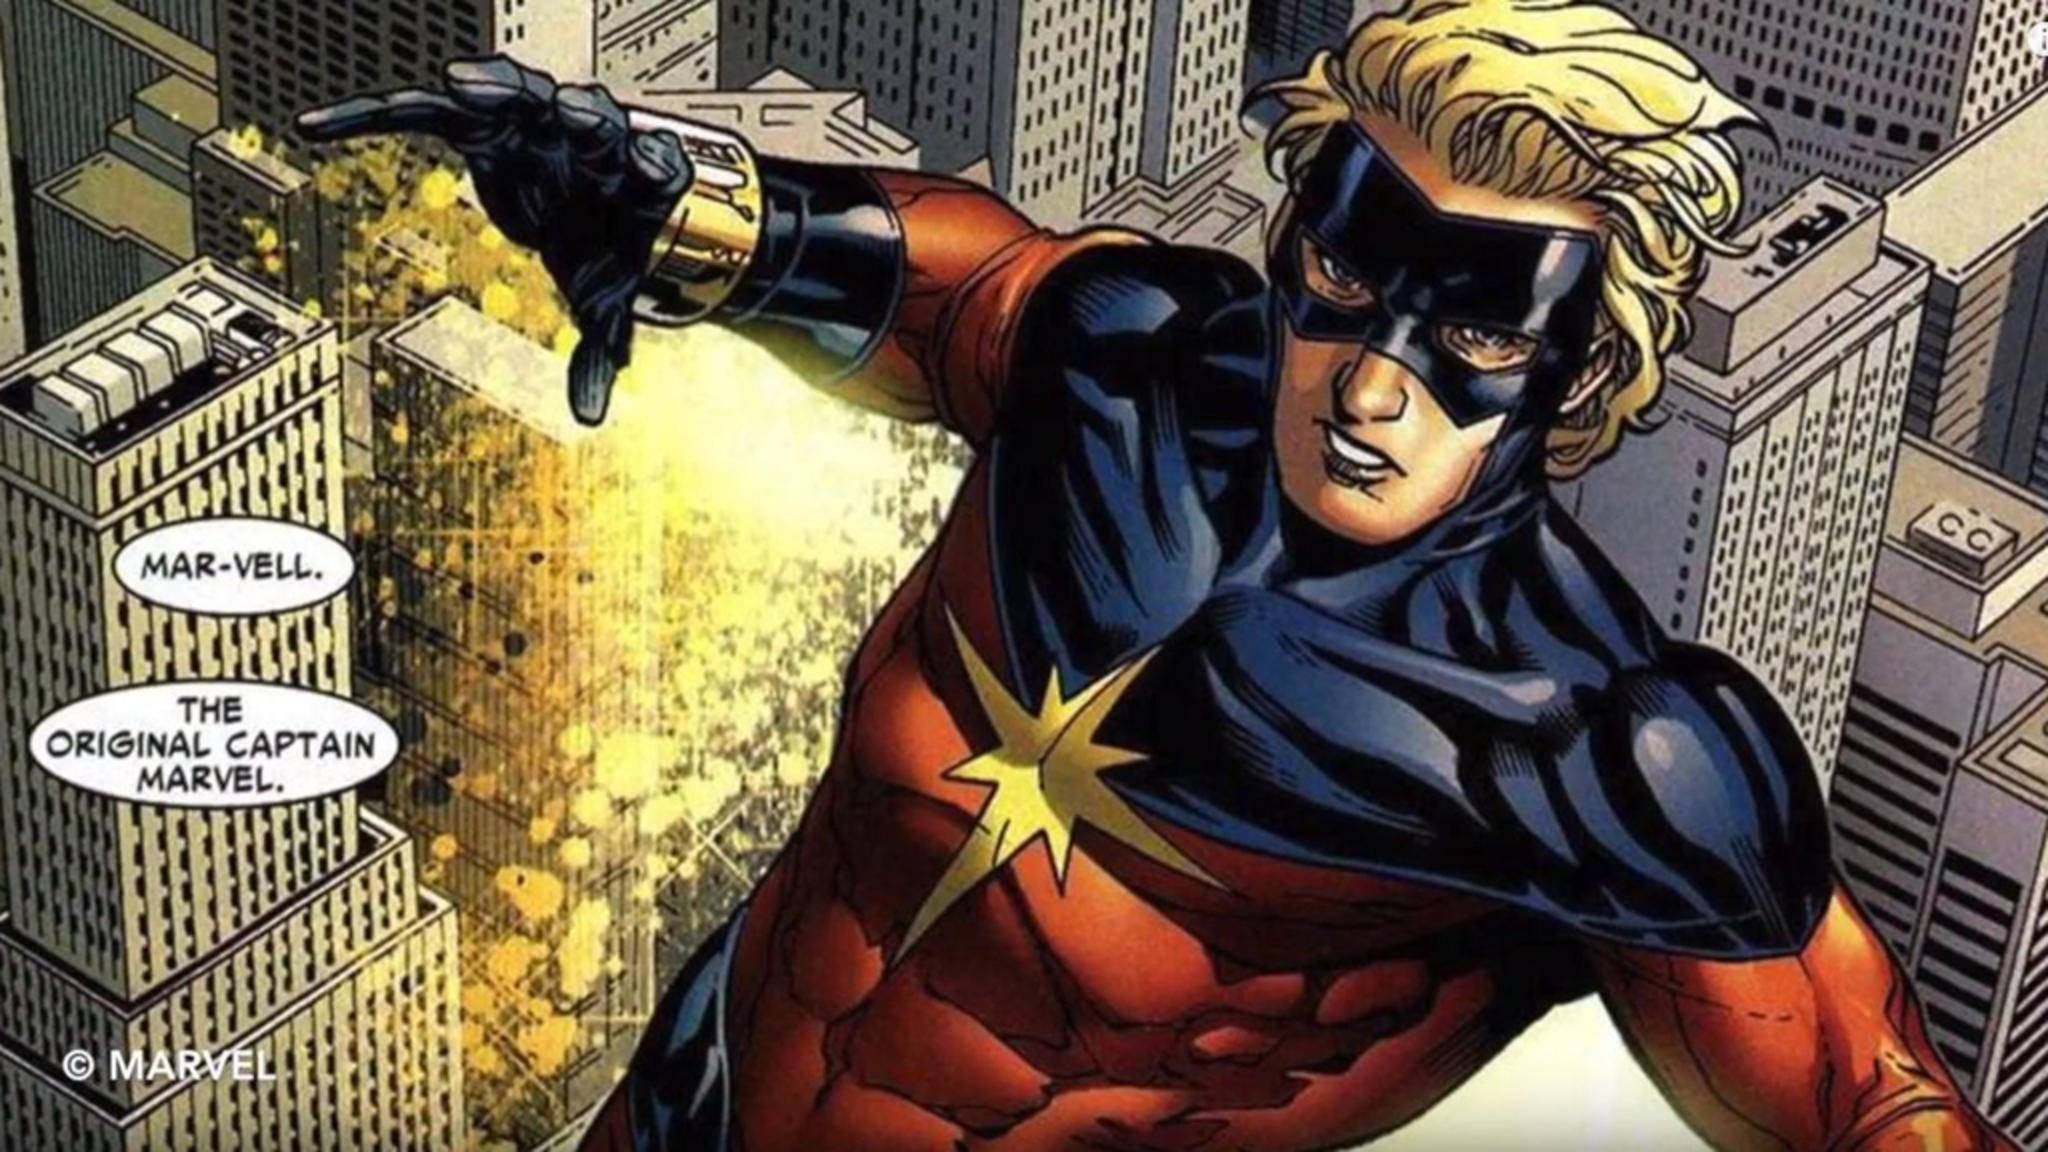 Der Kree Mar-Vell war der erste Captain Marvel in den Marvel-Comics.